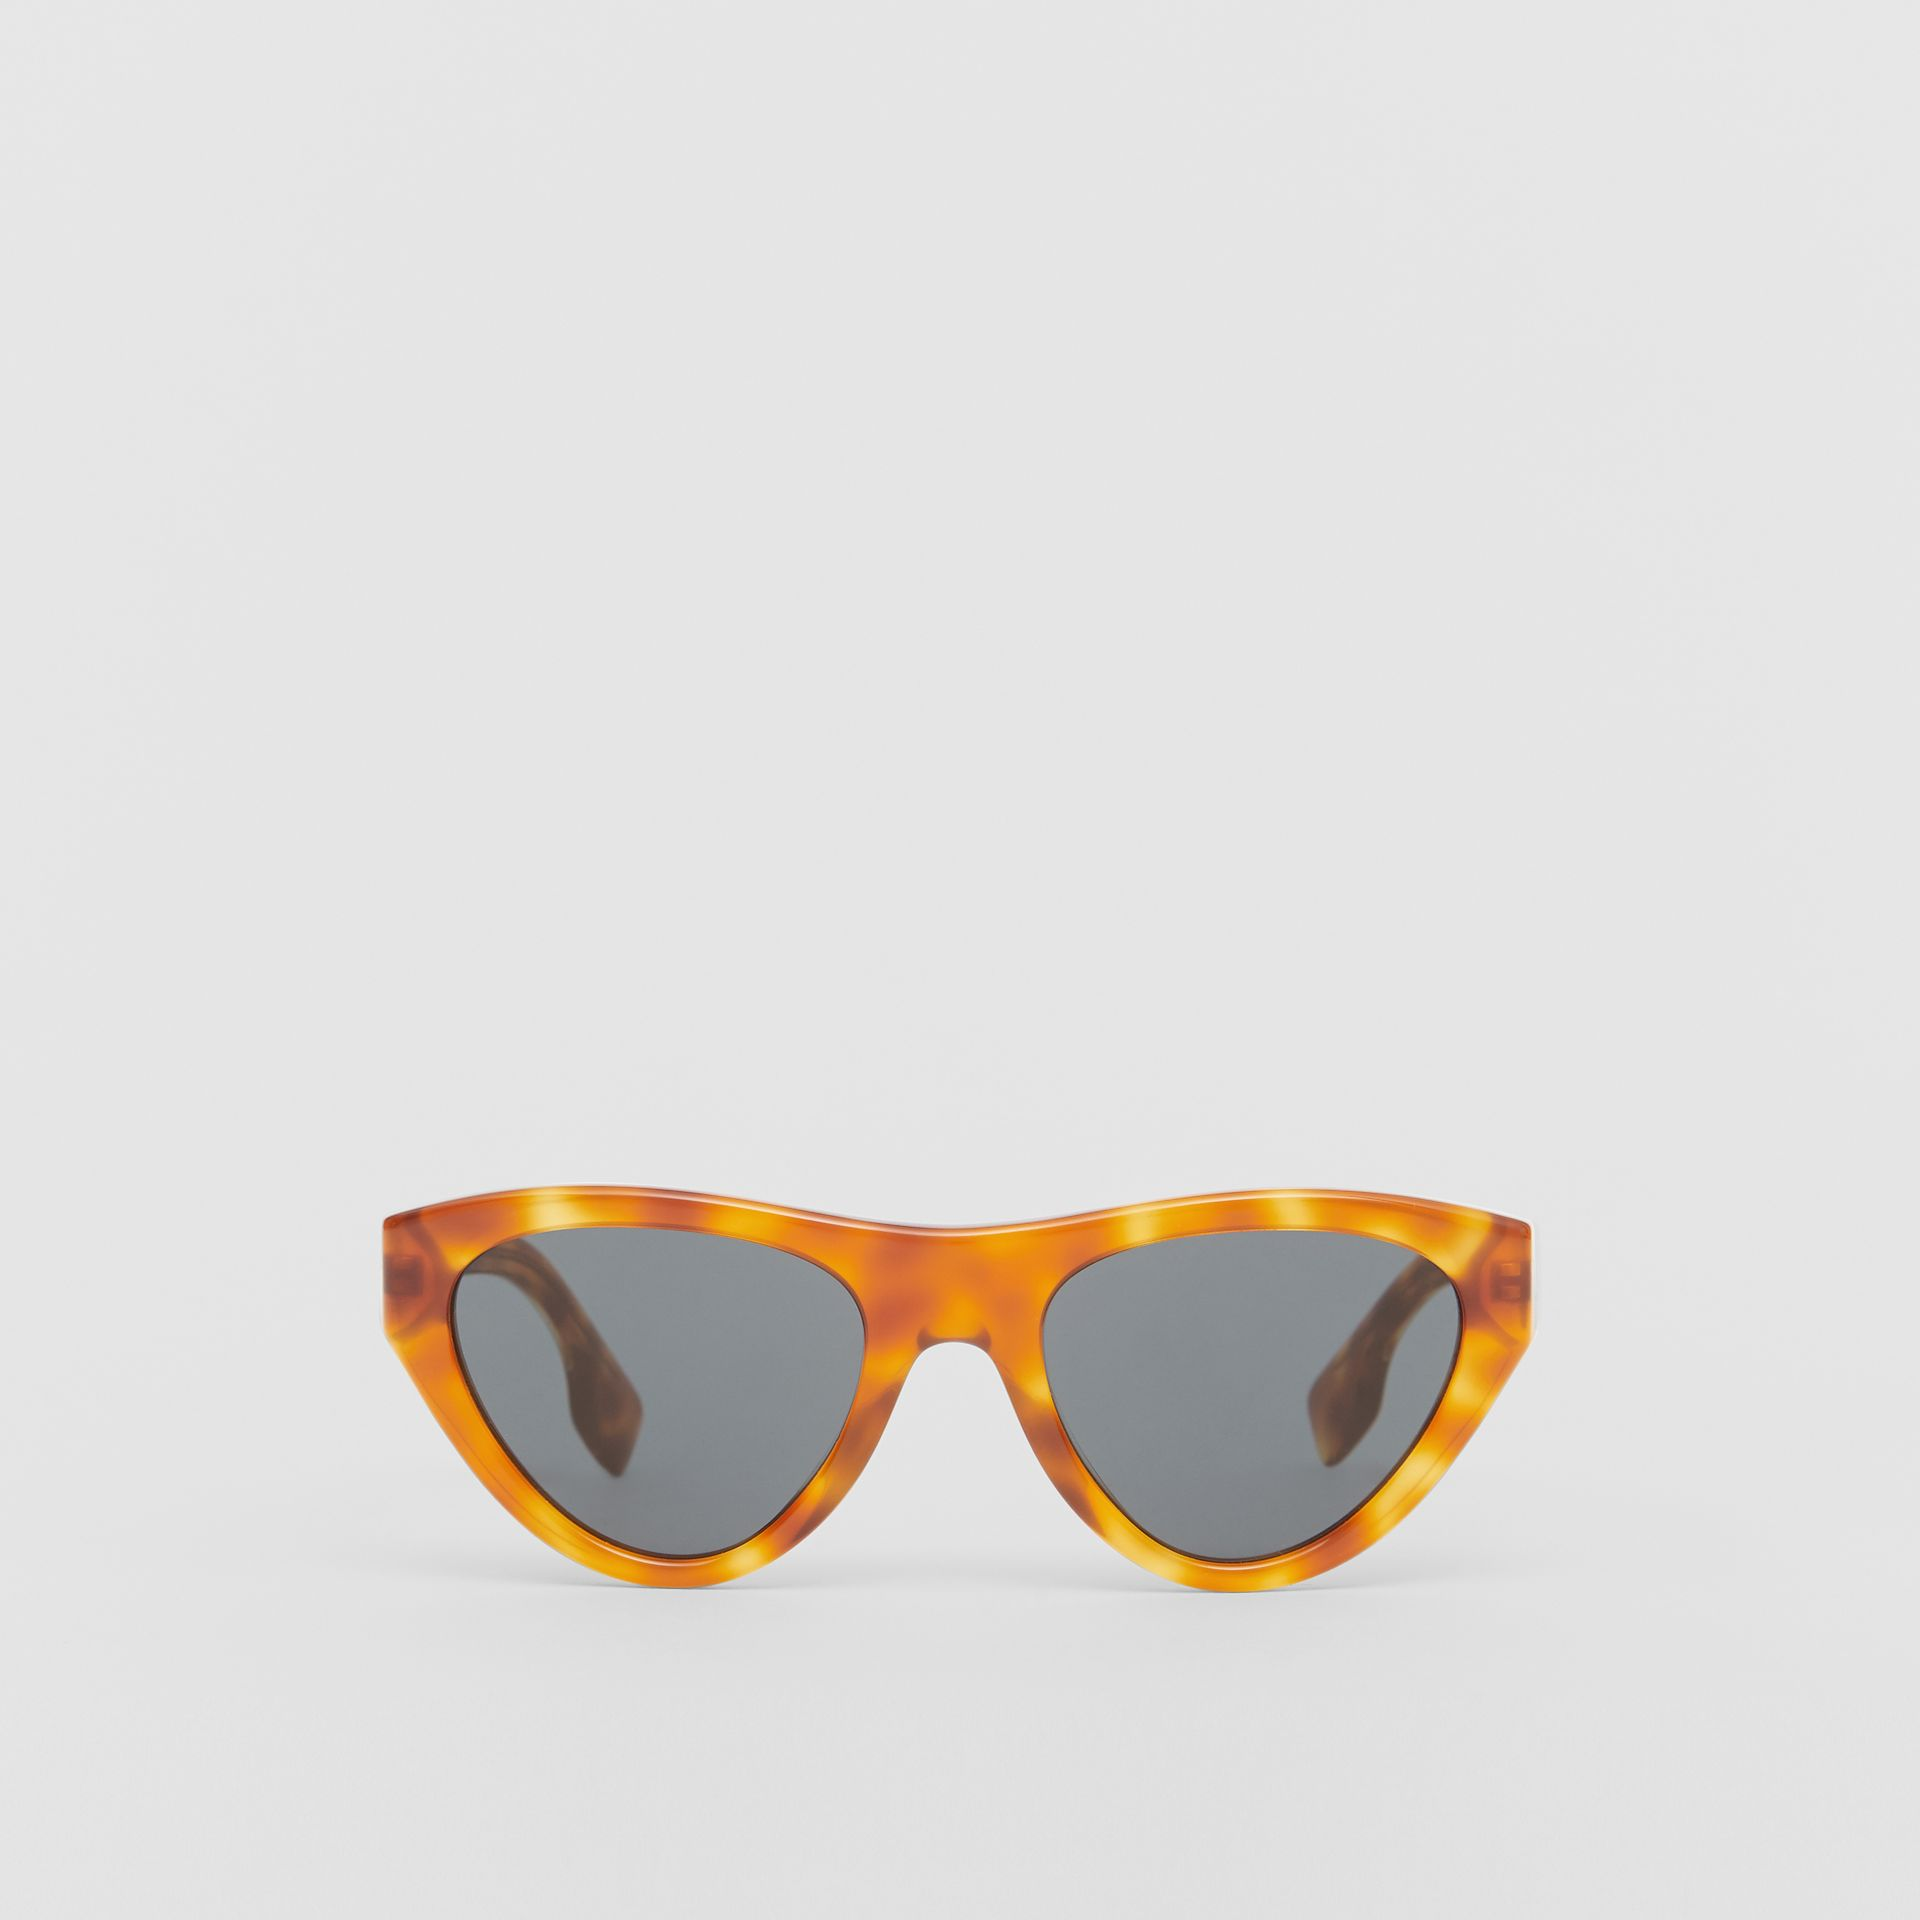 Triangular Frame Sunglasses in Tortoise Amber - Women | Burberry - gallery image 0